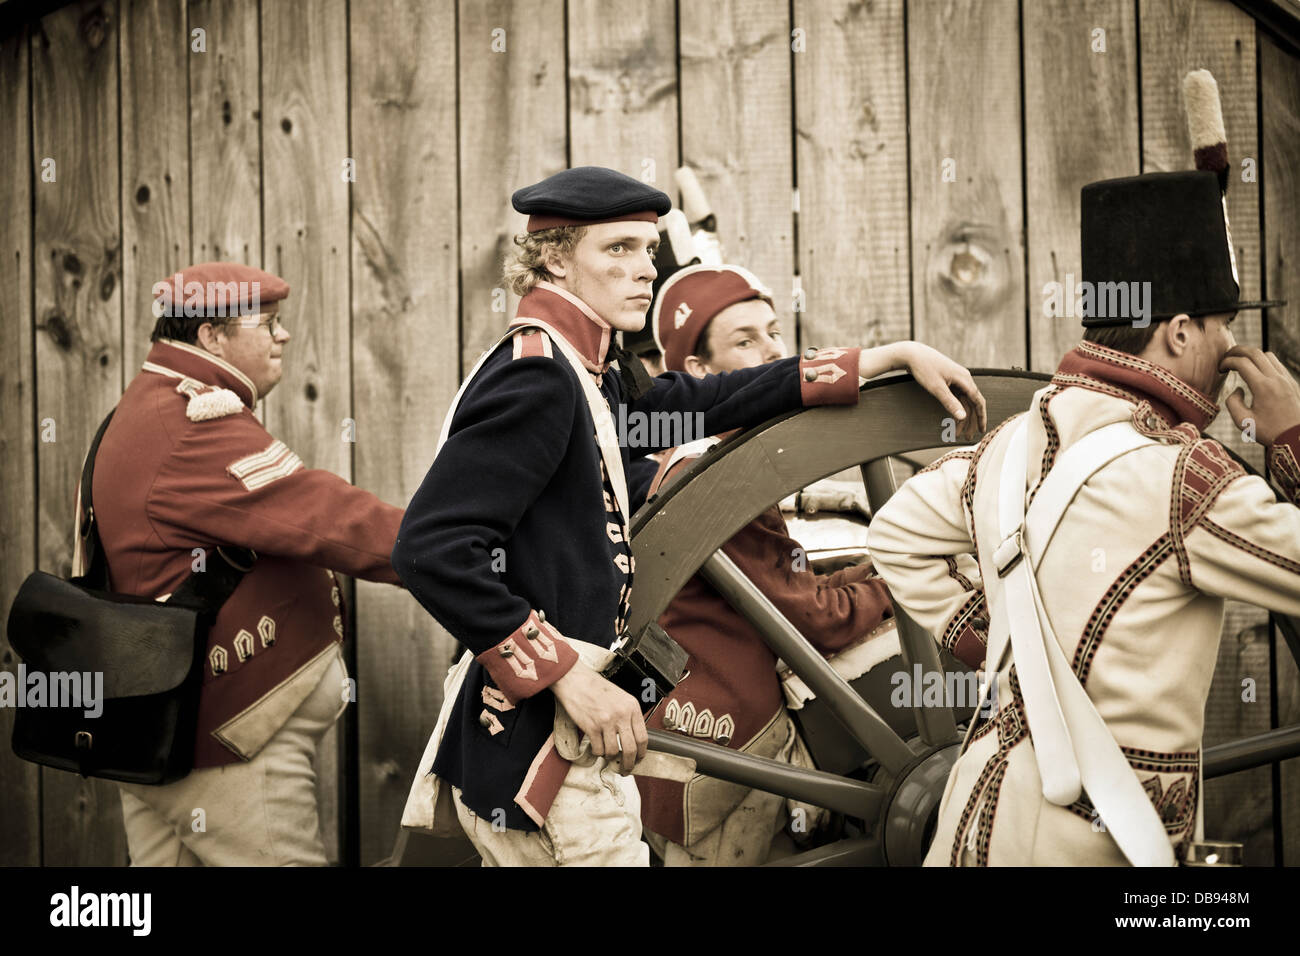 Canada,Ontario,Niagara-on-the-Lake, Fort George National Historic Park, War of 1812 re-enactment - Stock Image